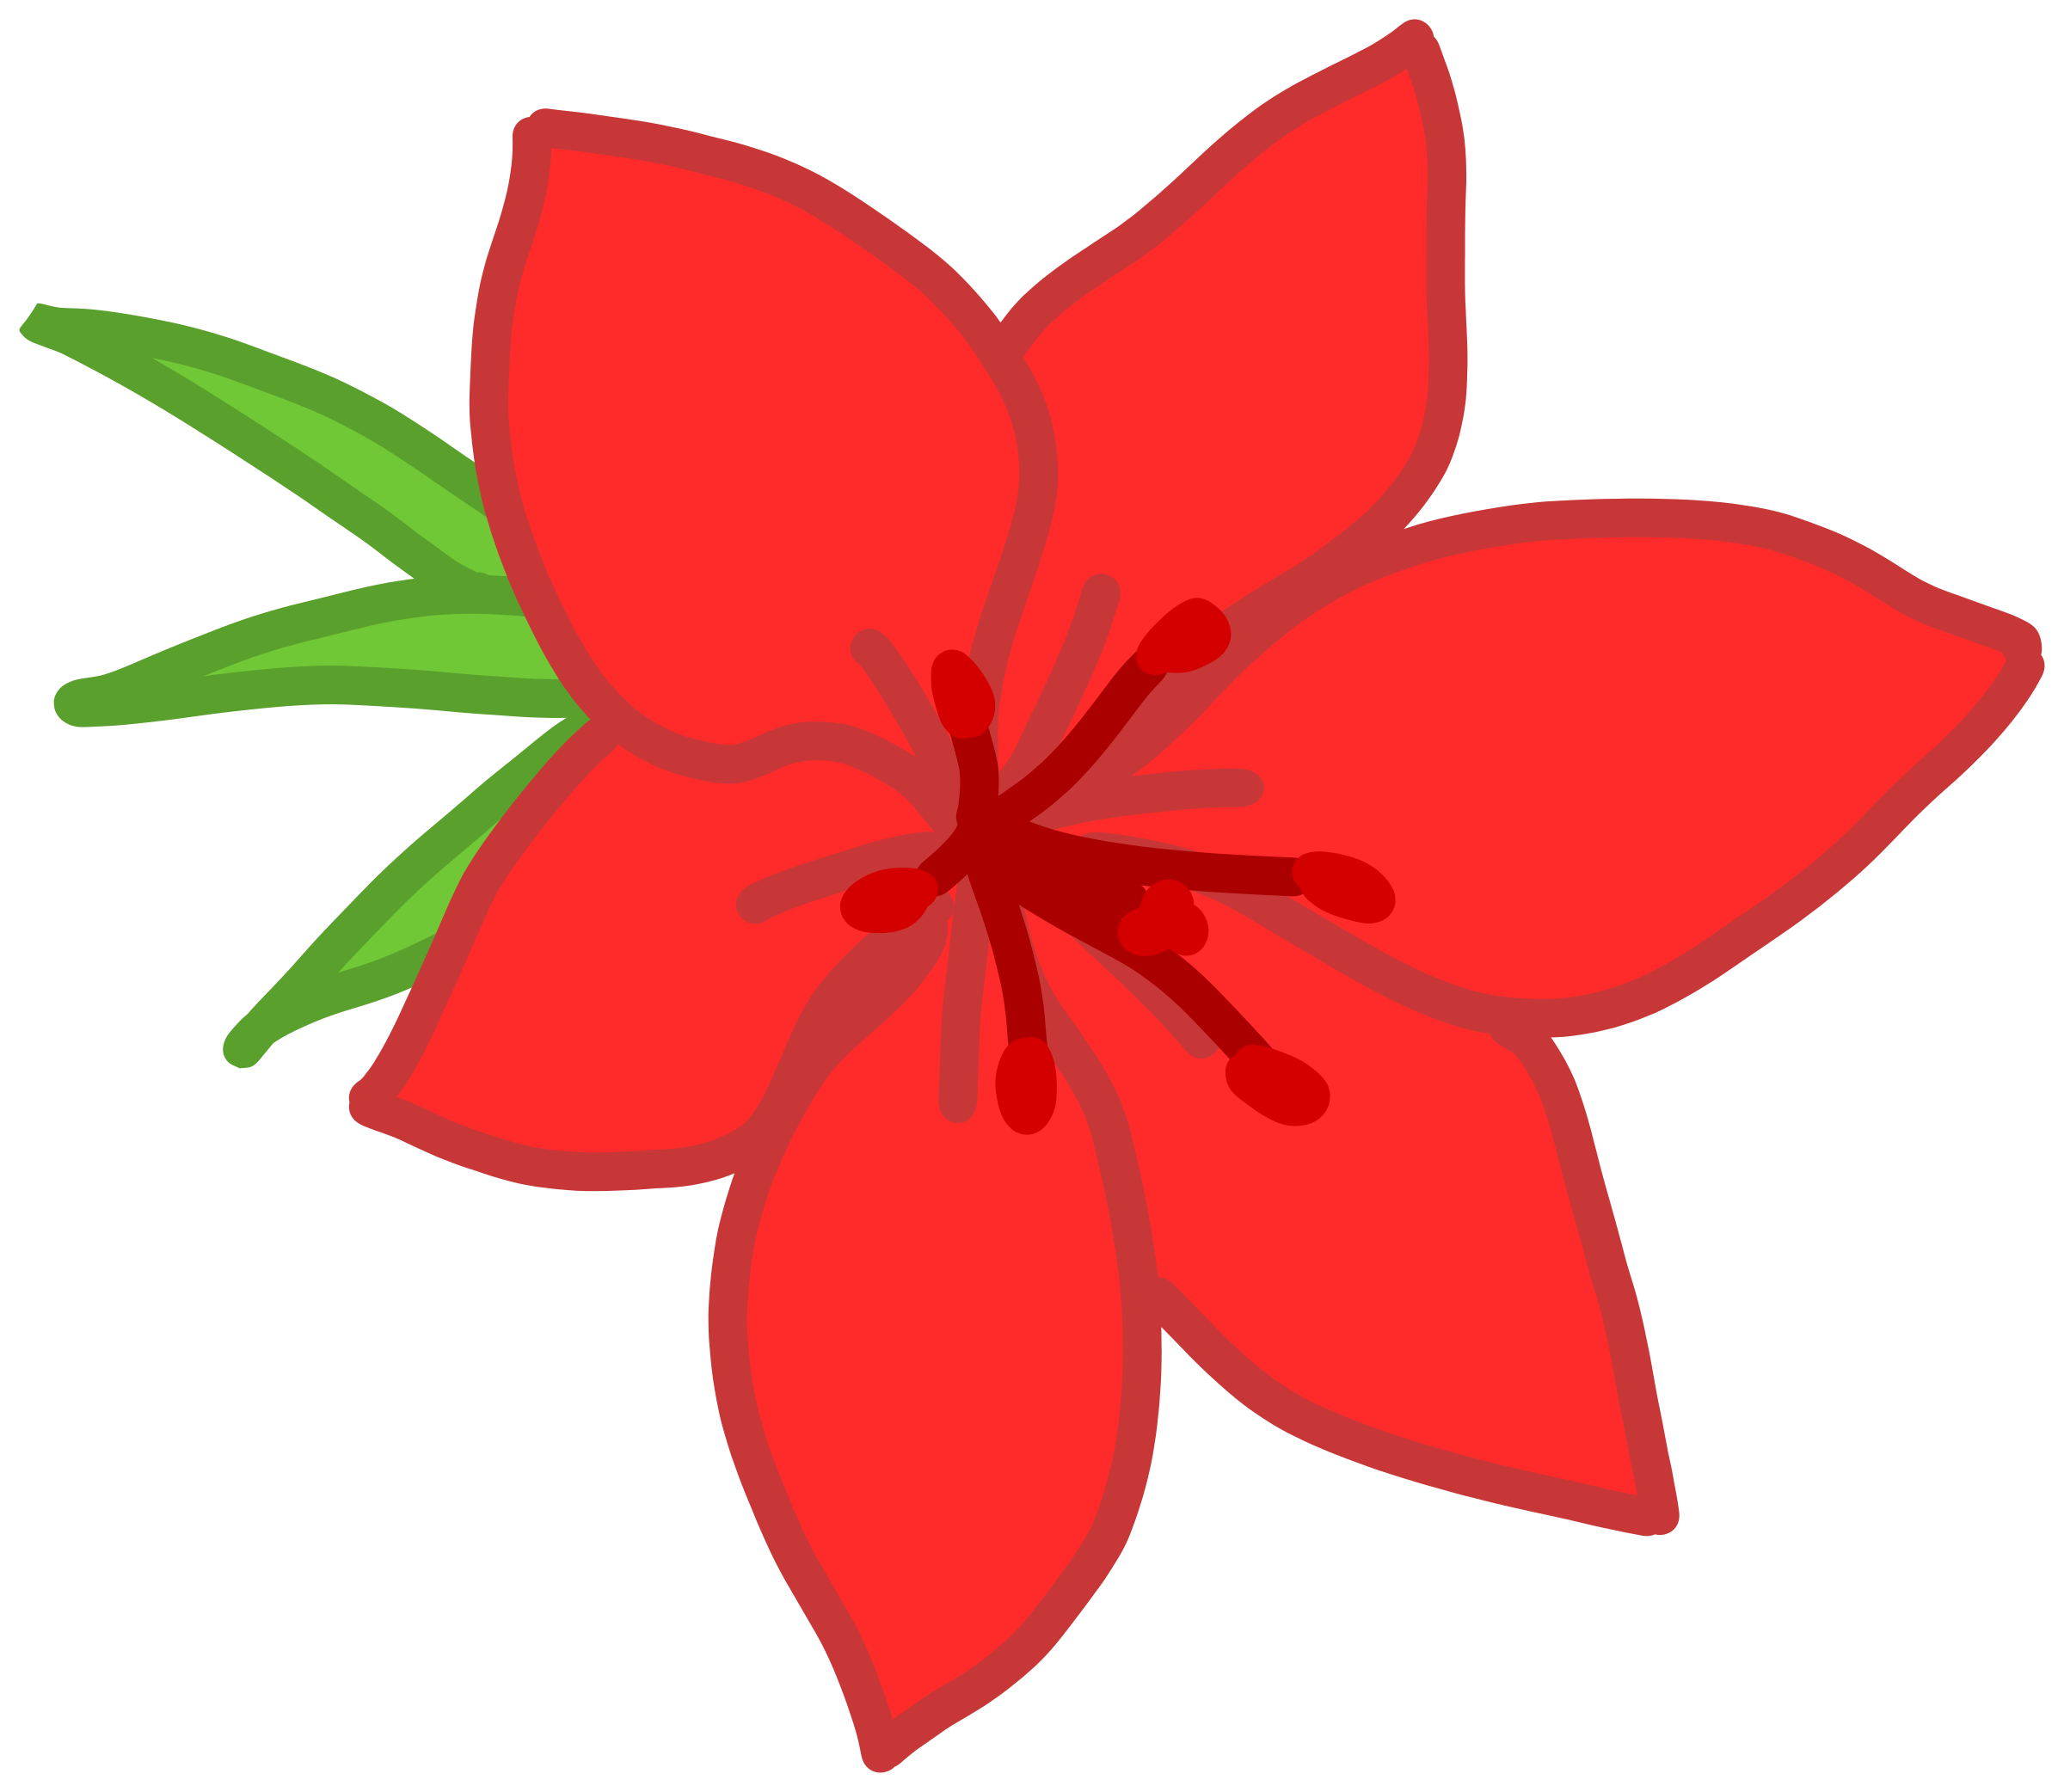 Image of flower clipart picture royalty free library Clipart - Red flower picture royalty free library